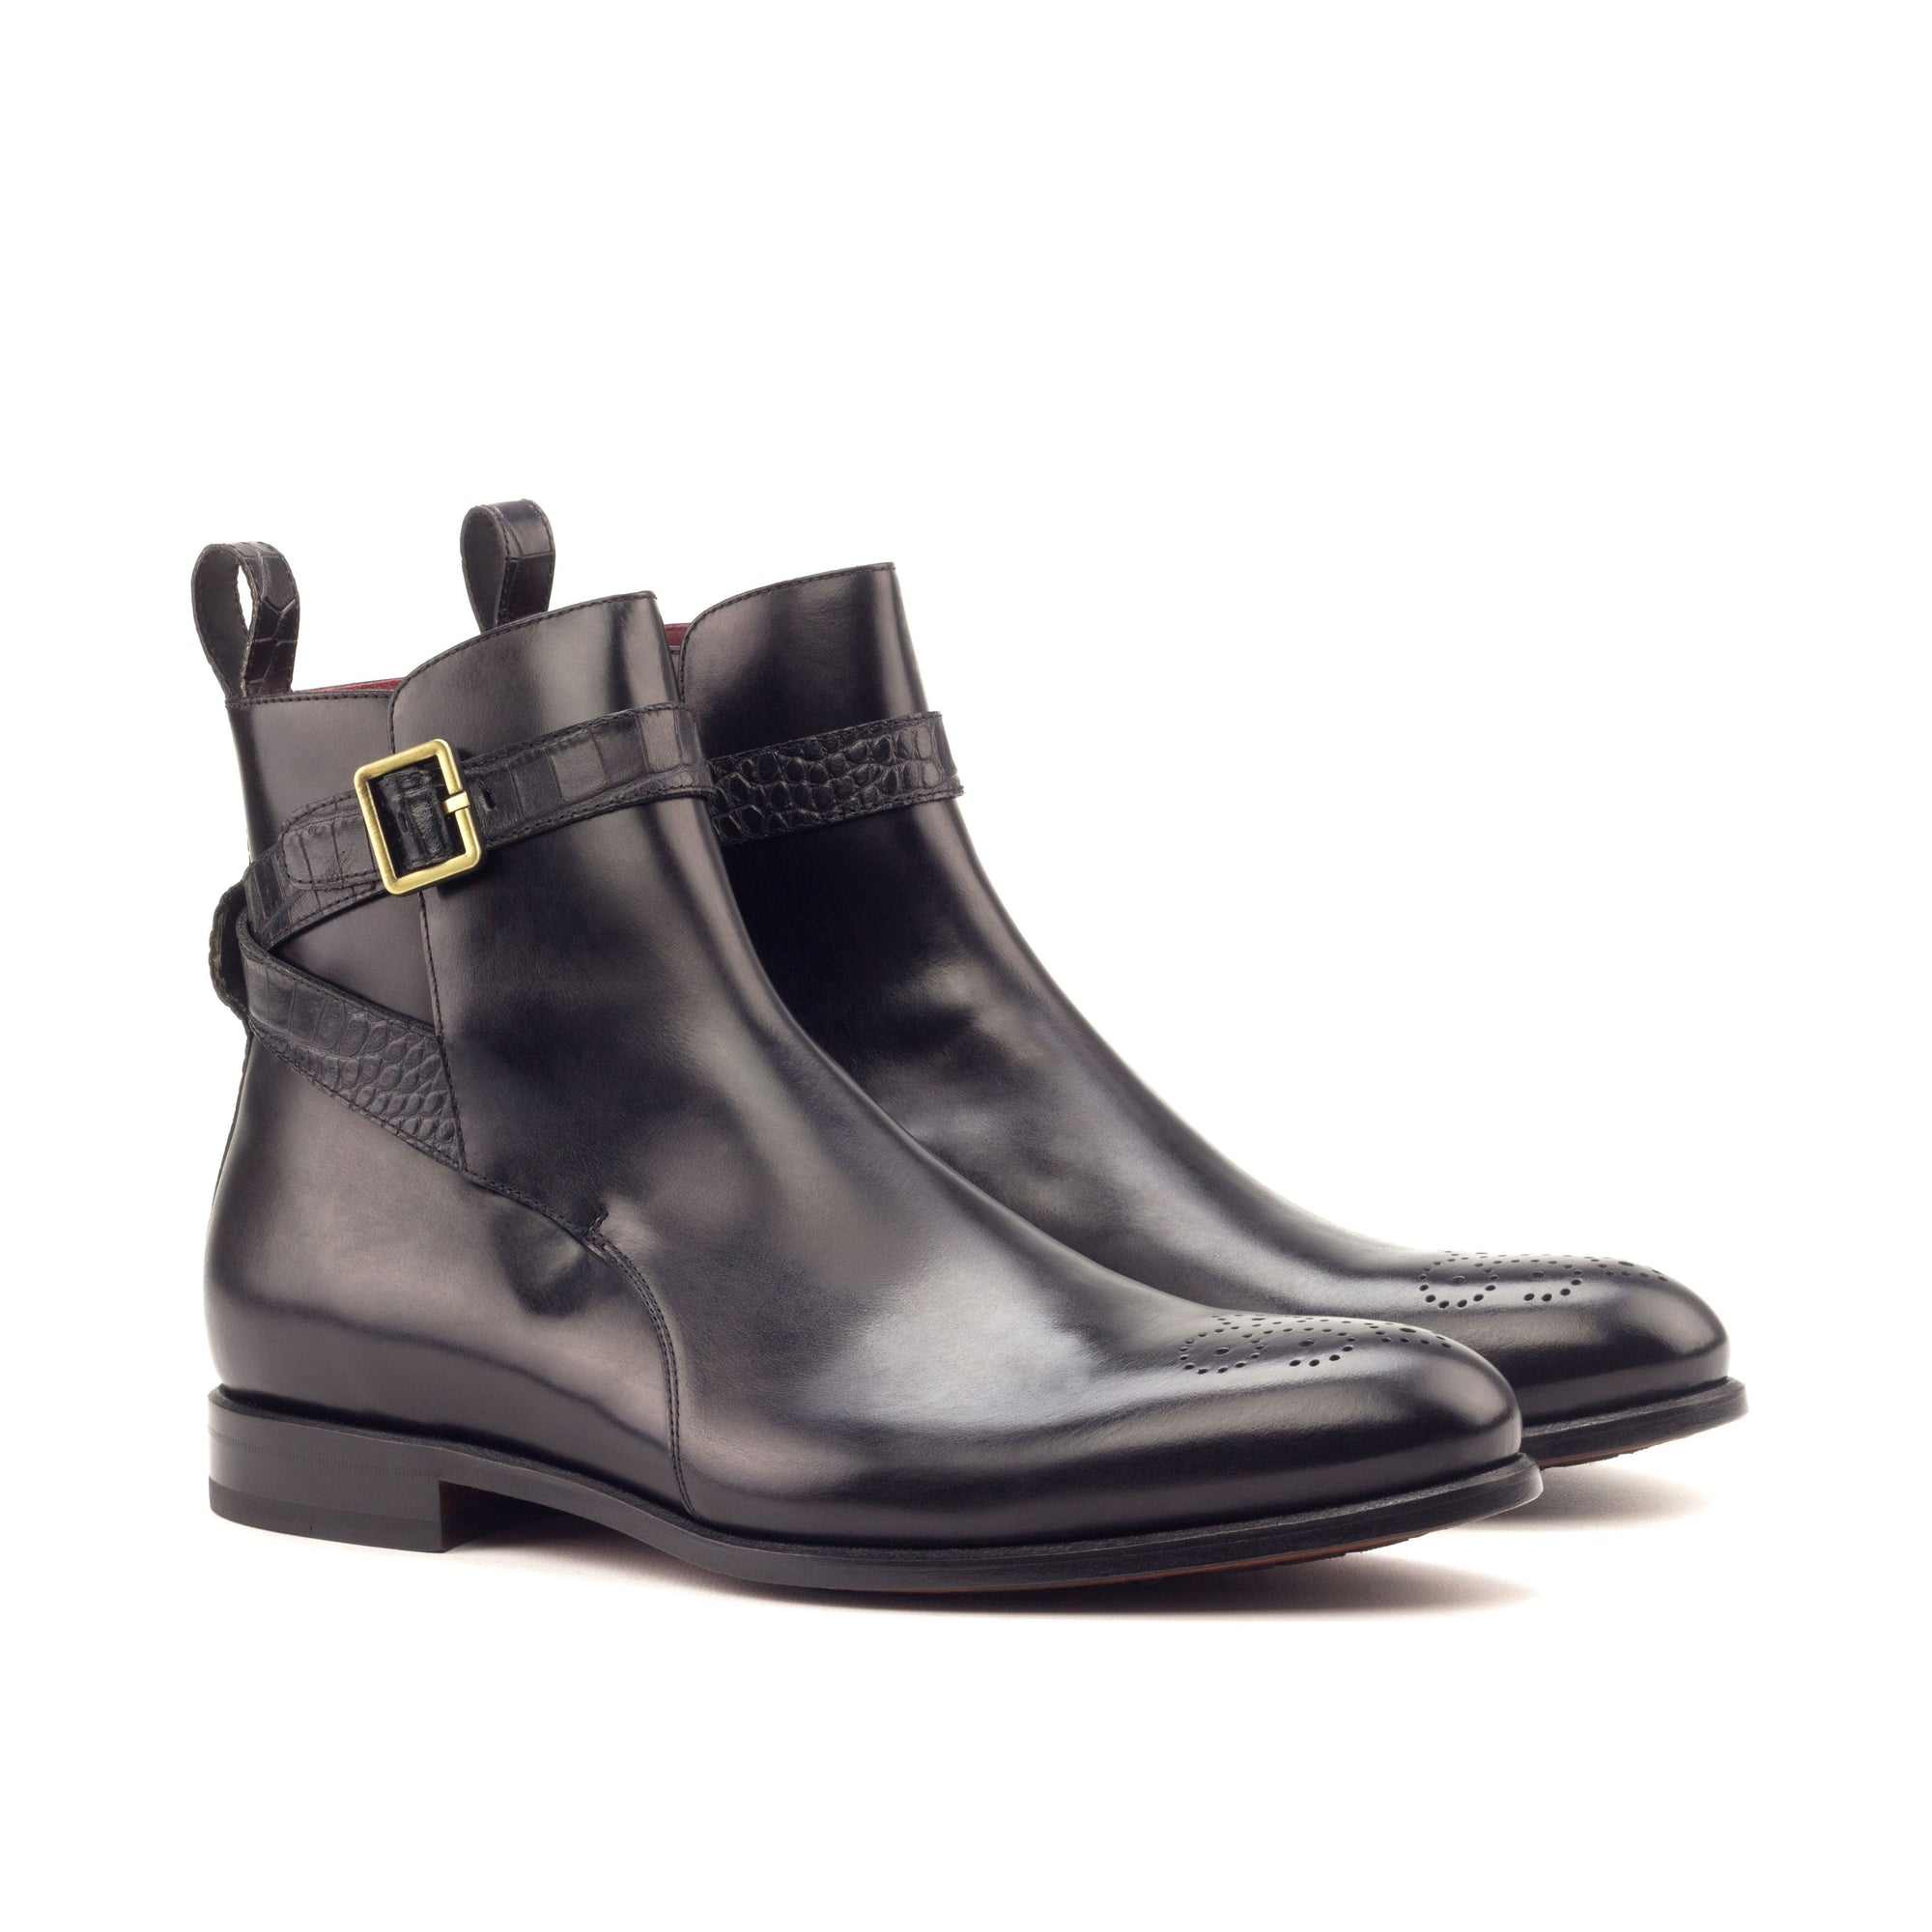 Dumas croco black calf leather Jodhpur boot